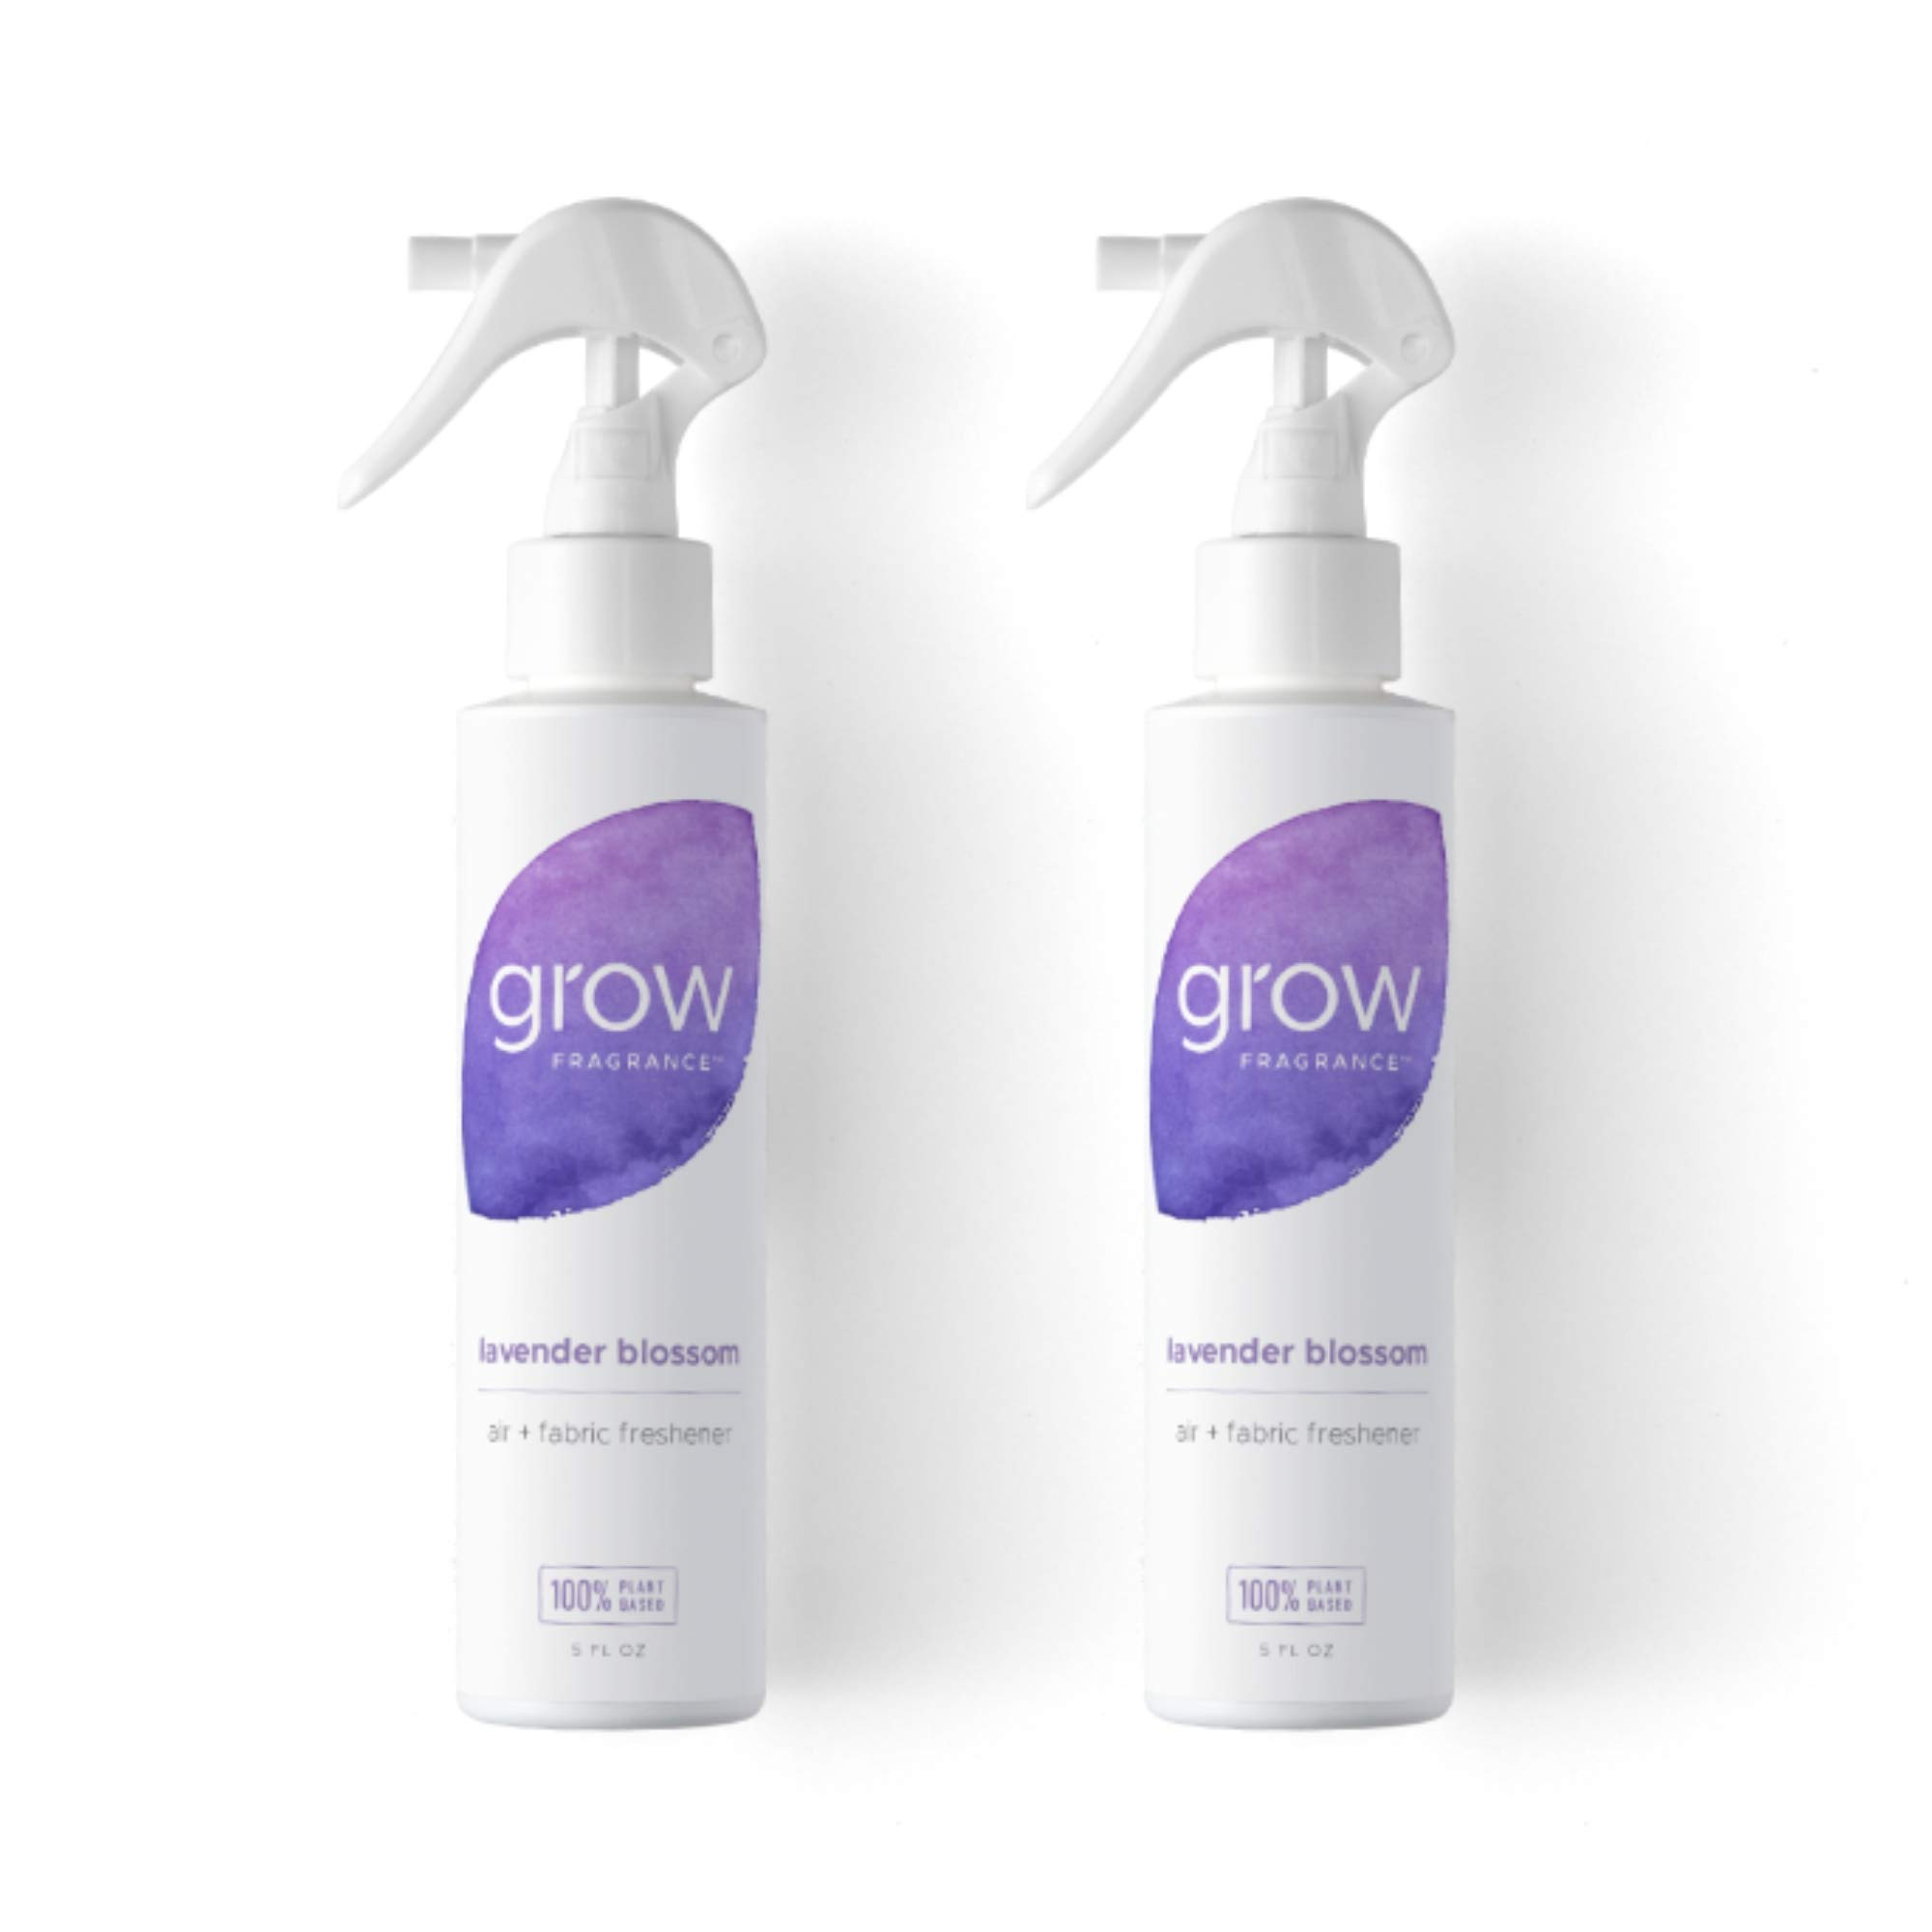 Grow Fragrance - Certified 100% Plant Based Air Freshener + Fabric Freshener Spray, Made With All Natural Essential Oils, Lavender Scent, 5 oz. (Pack of 2)